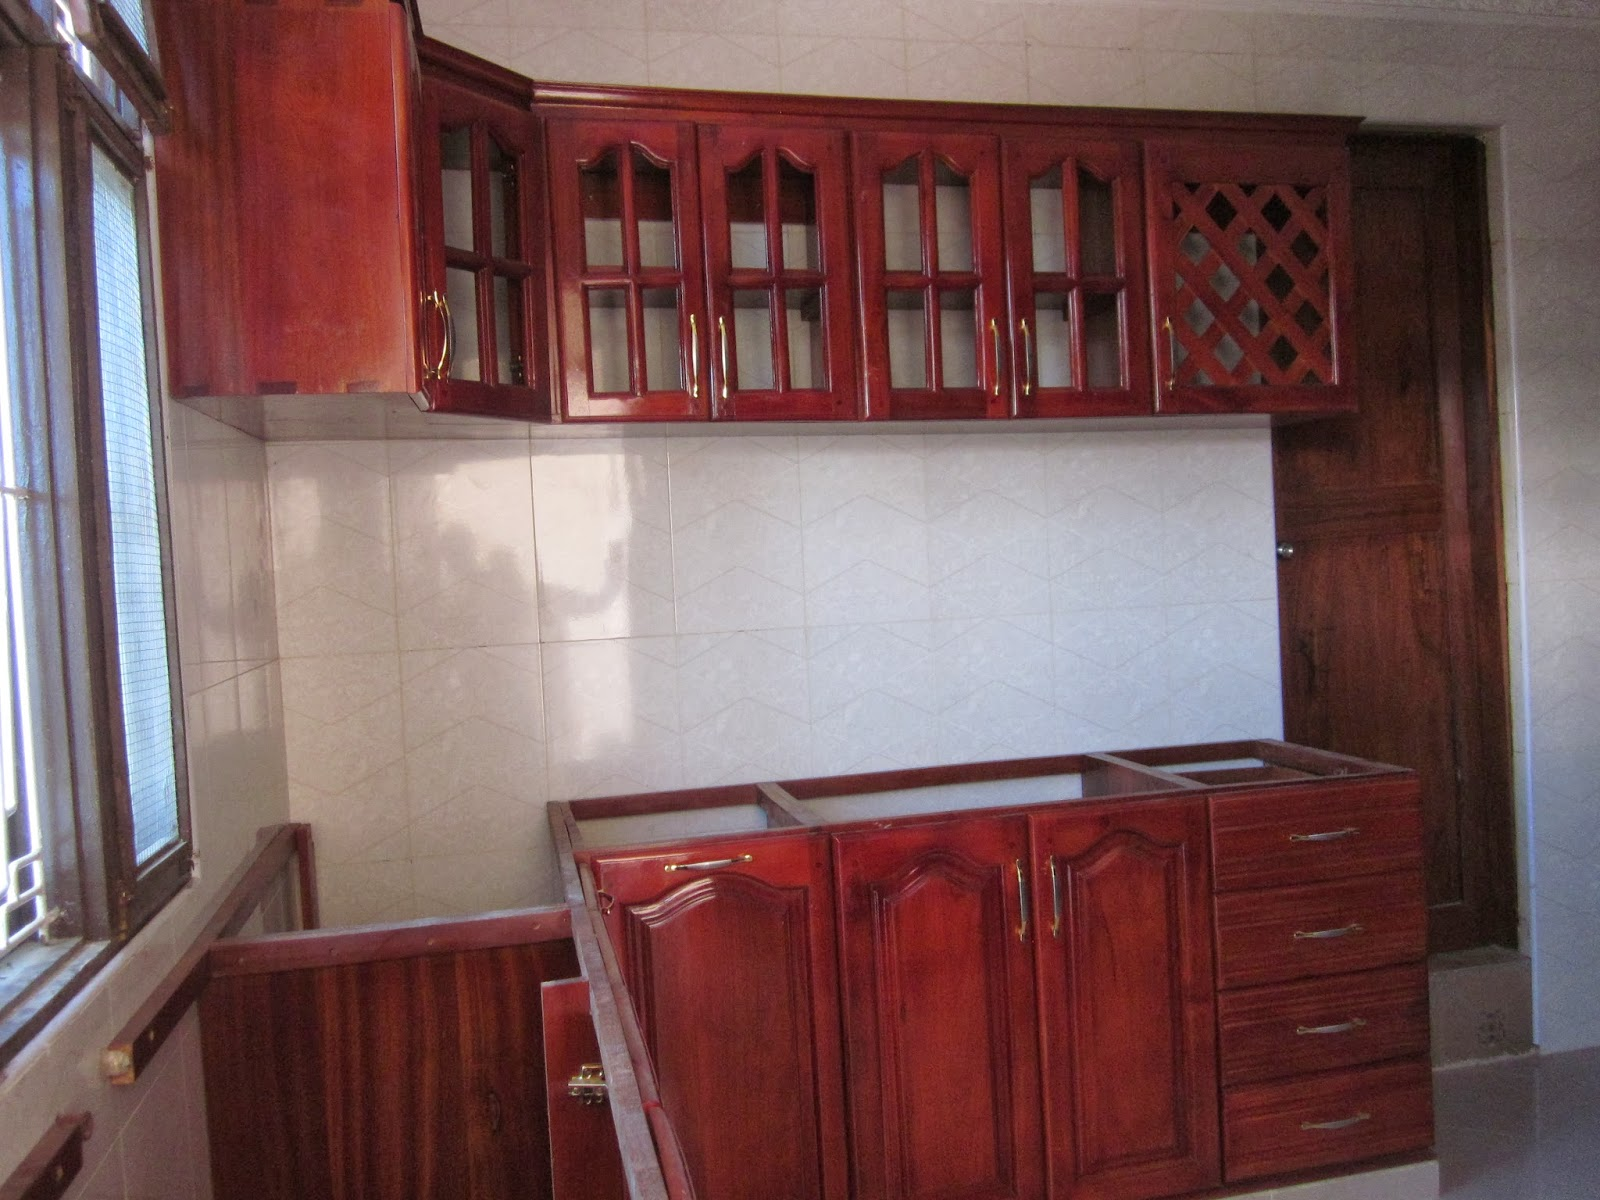 Building Material Home Patterns Funitures And Decors Kitchen Cabinet Za Kisasa Zaidi